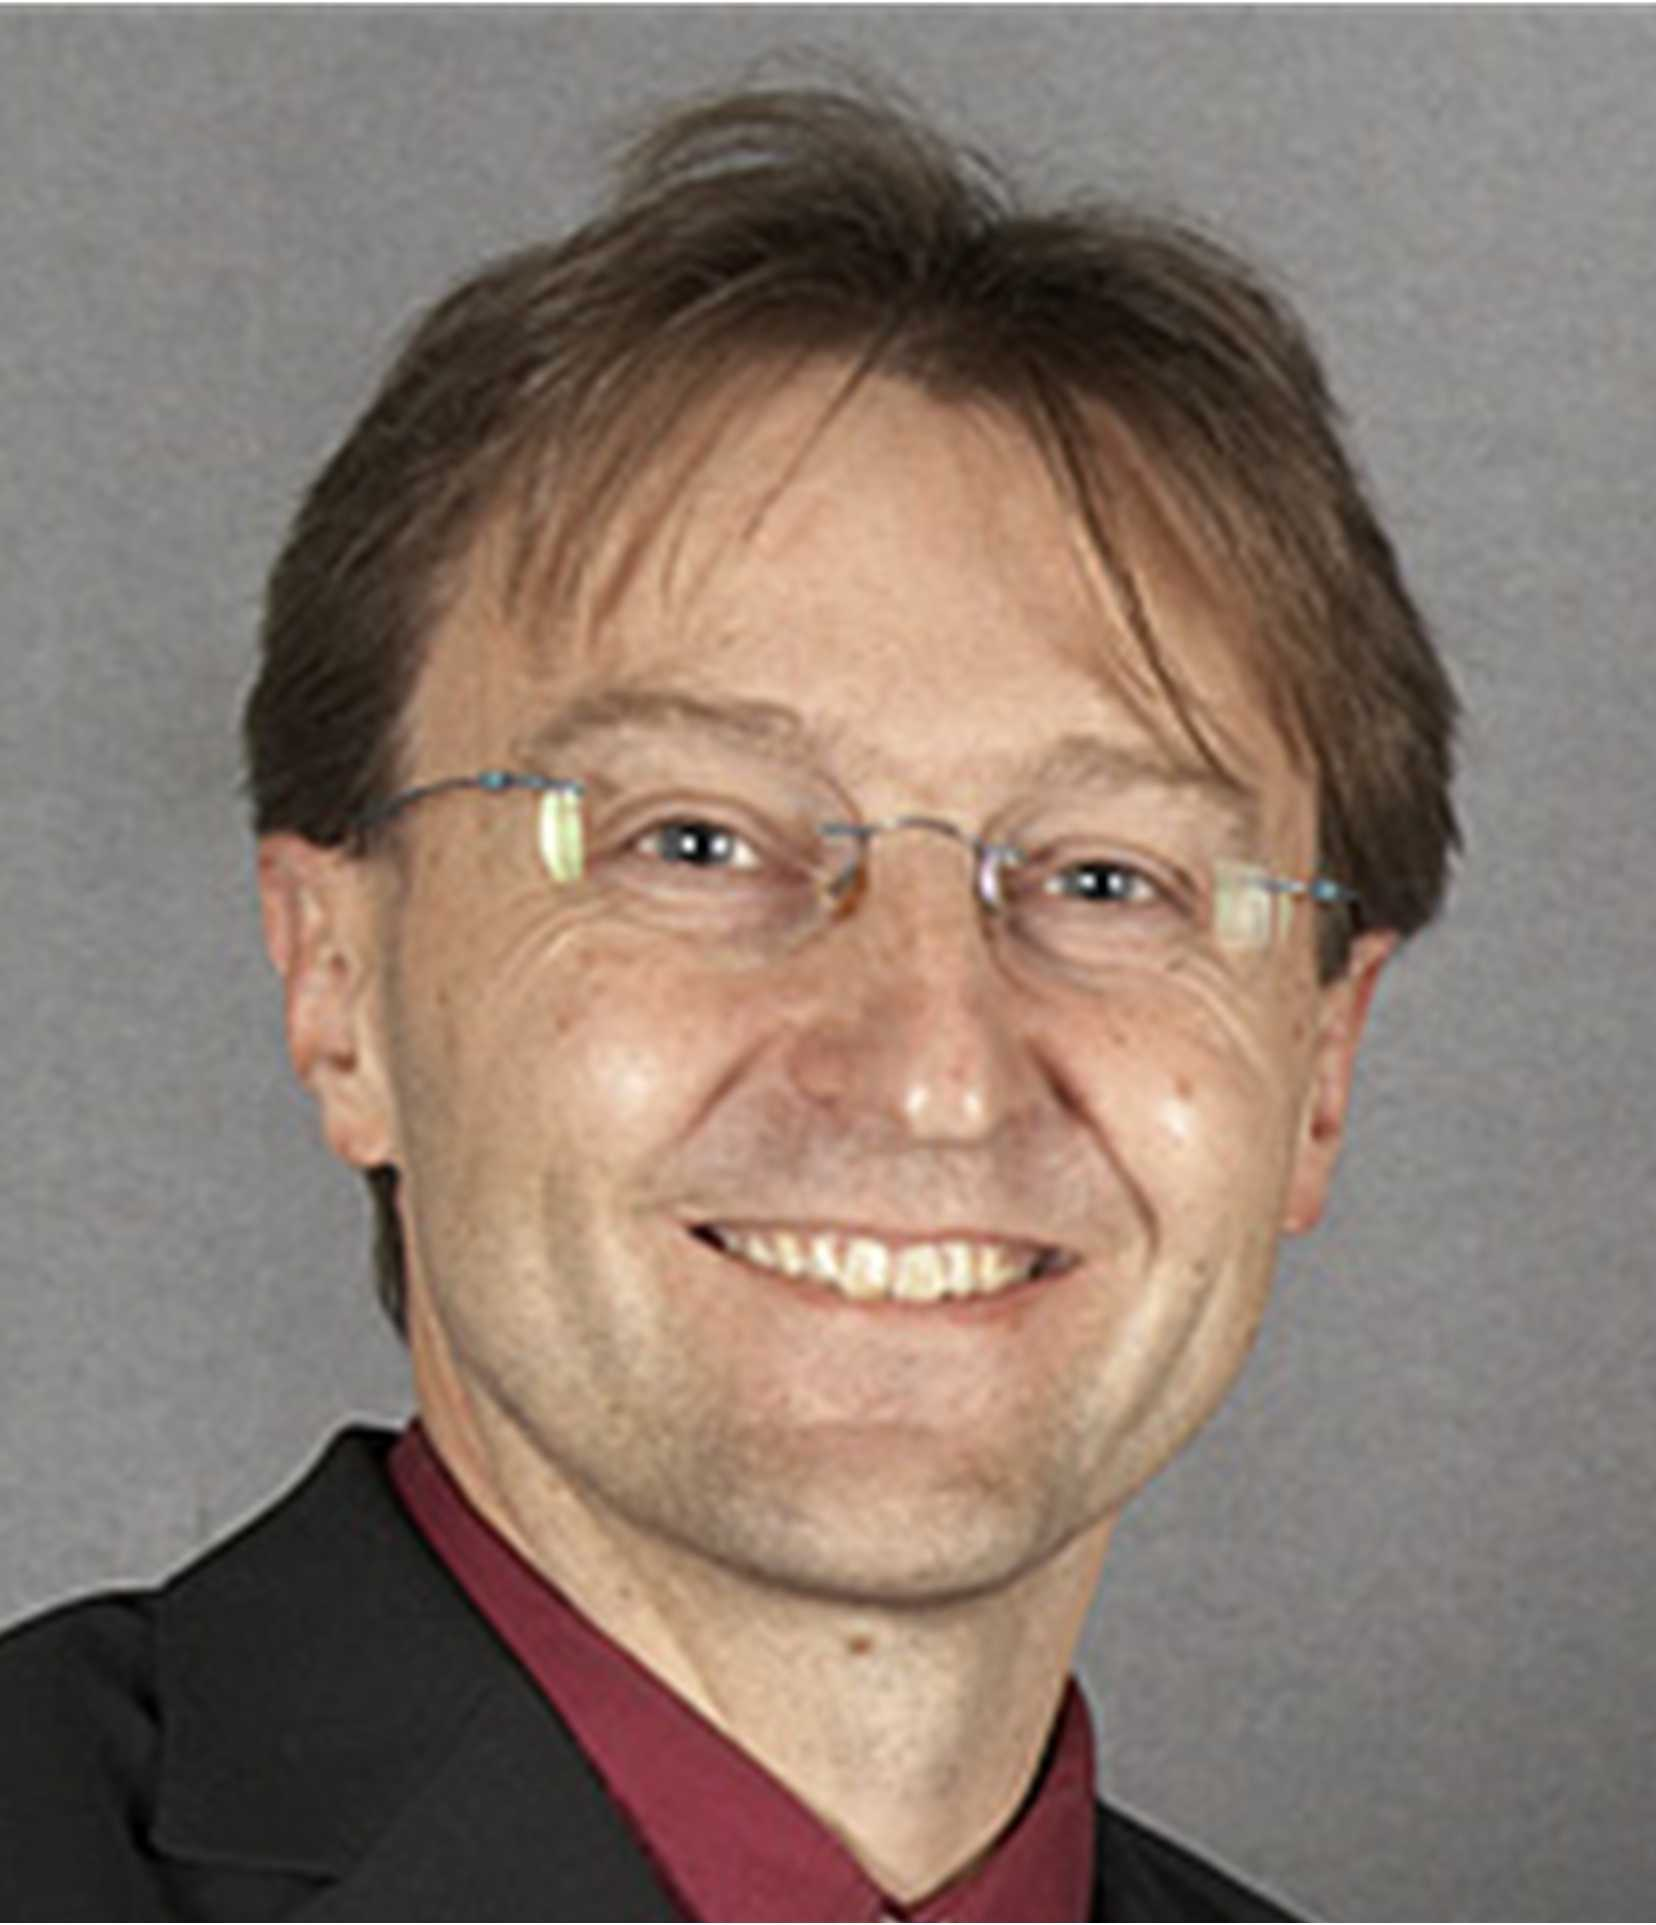 Photograph of Professor Steffen Staab